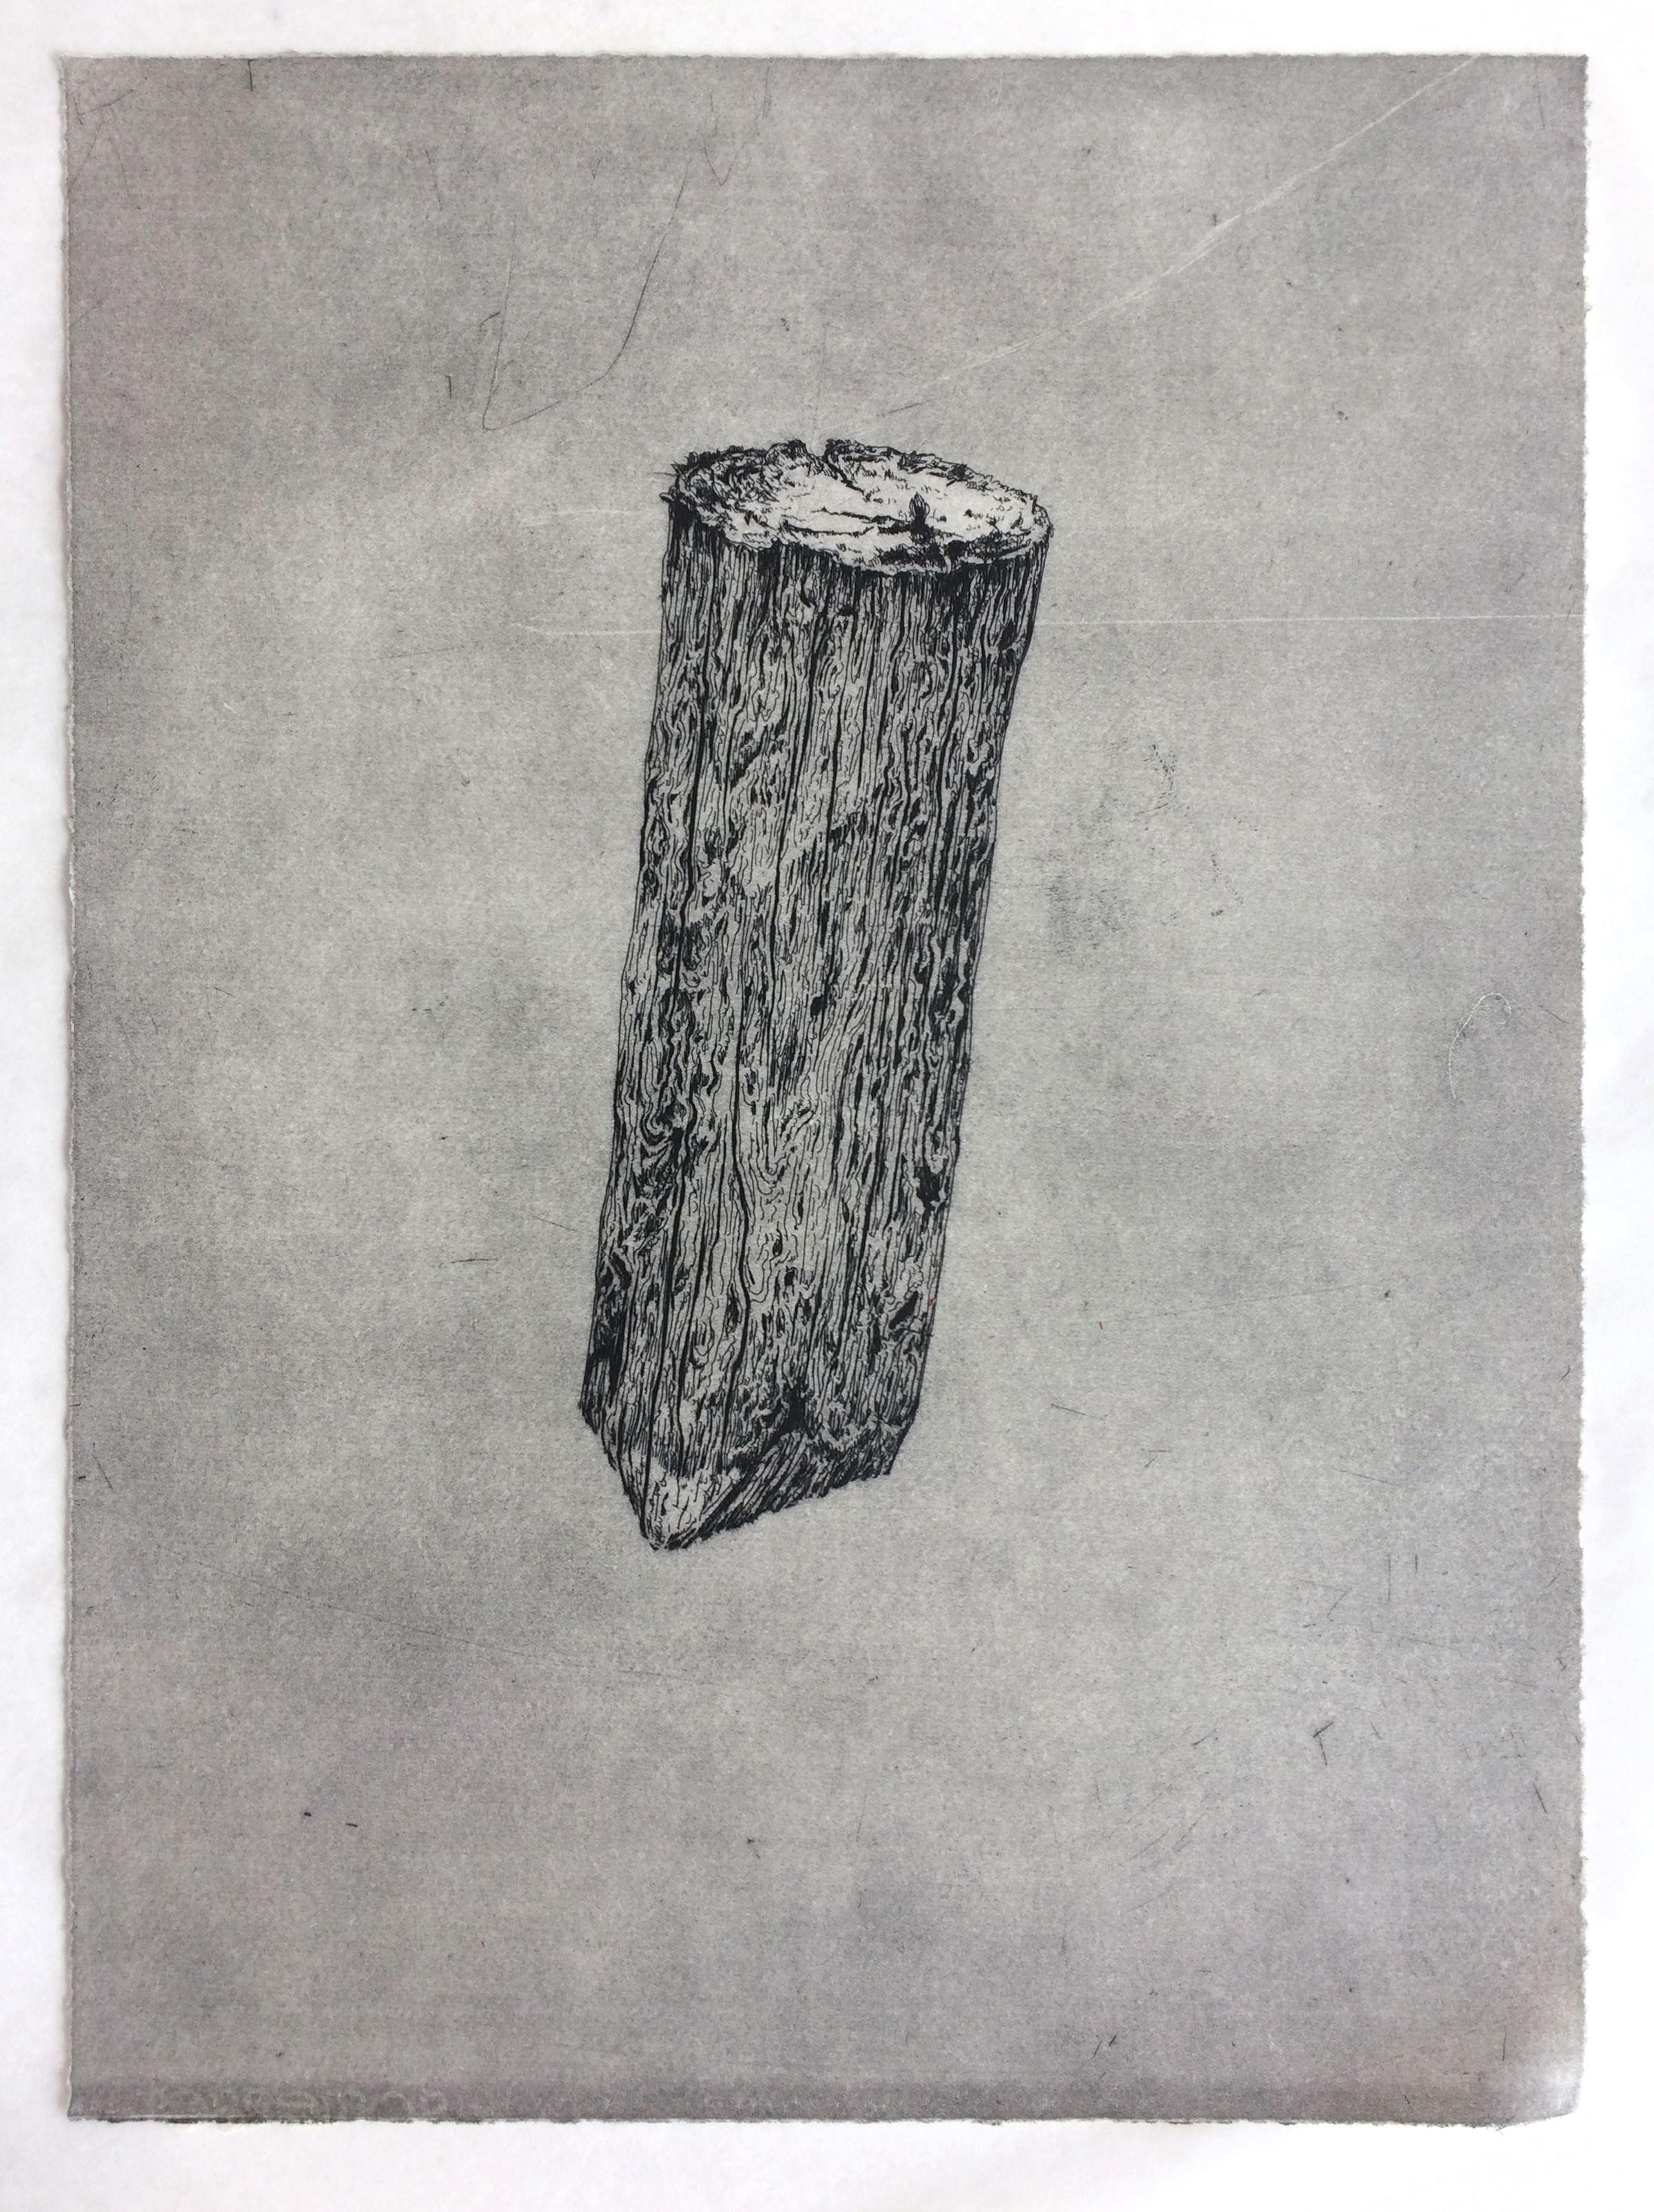 'Peg' - Hardground etching, 29 x 42cm